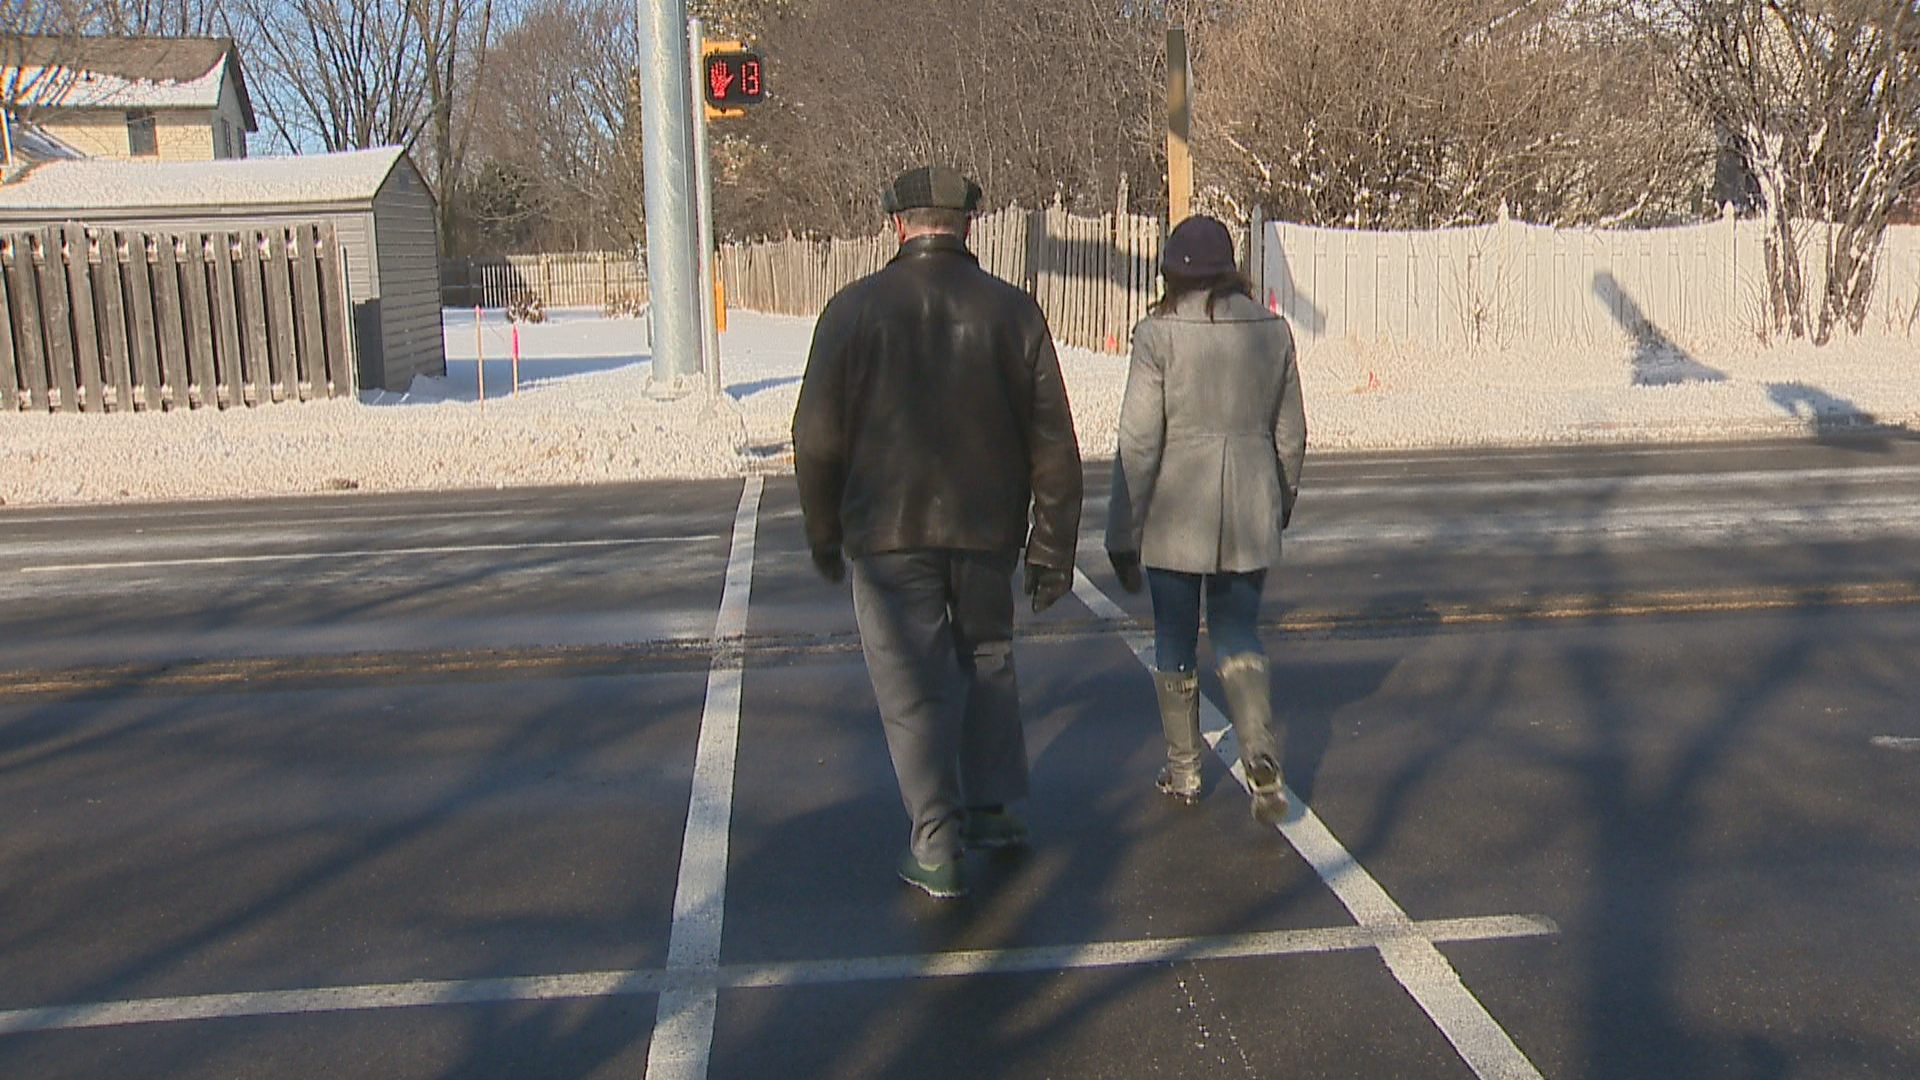 New pedestrian hybrid beacon on Riverside Drive in Allouez, February 6, 2018. (WLUK)<p></p>